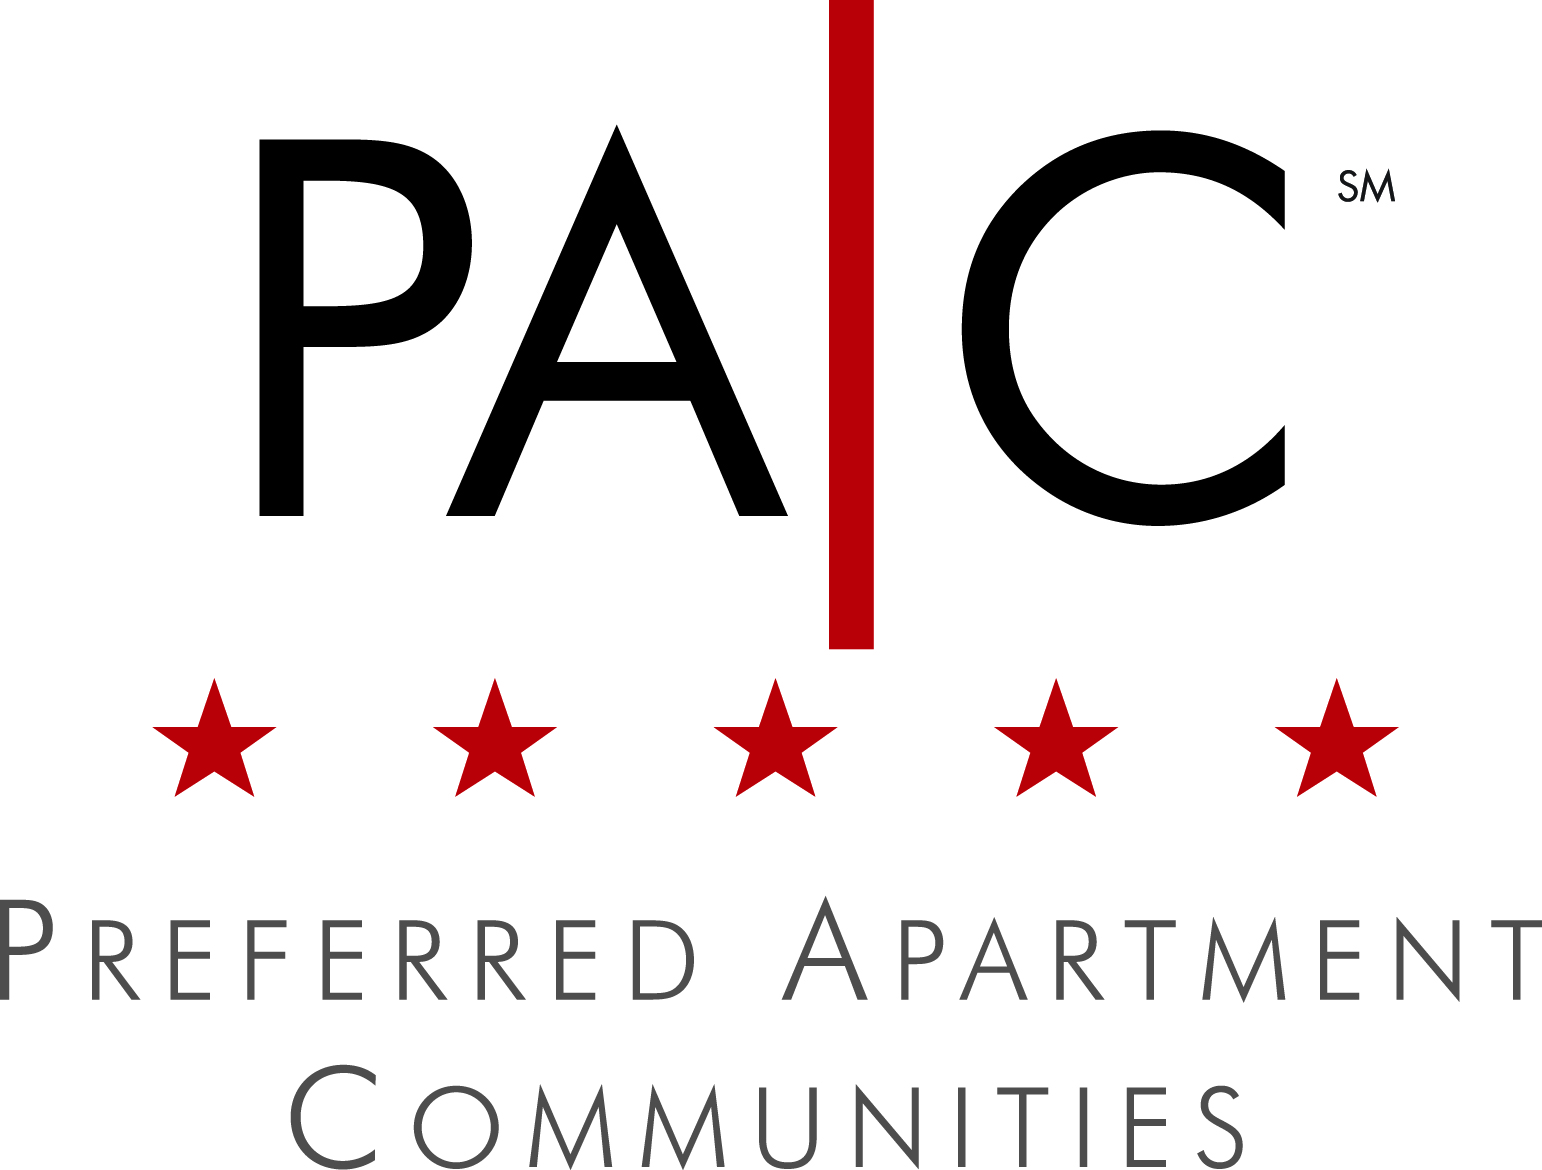 Preferred Apartment Communities, Inc. Company Logo